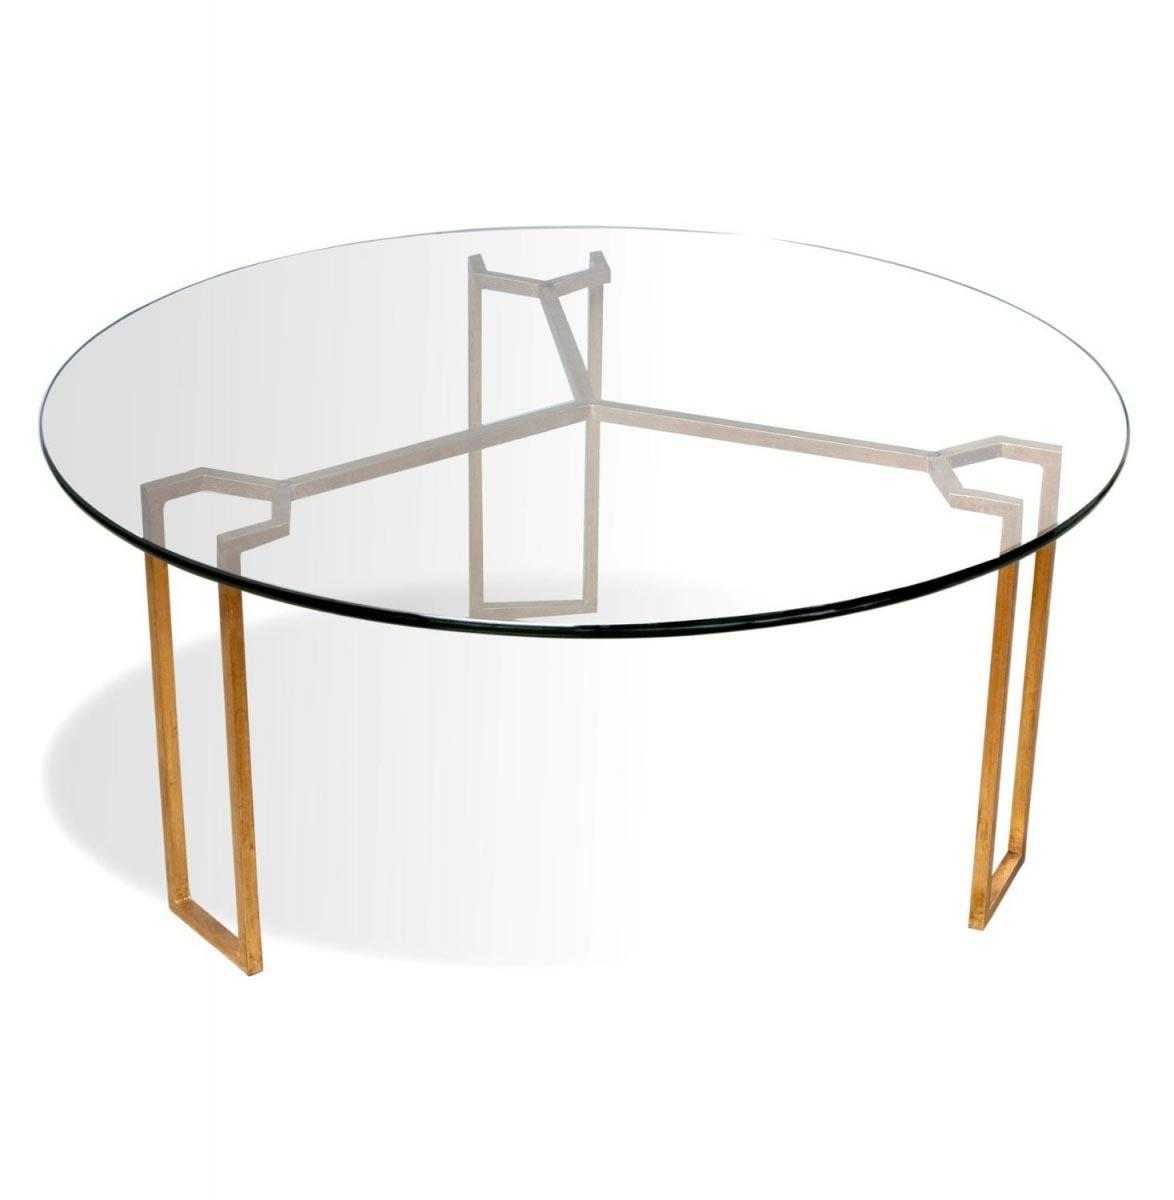 quatrefoil accent table tree life glass and gold coffee edwin gabby white round tray teak driftwood kids furniture rubber threshold trim folding outdoor small drop leaf kitchen